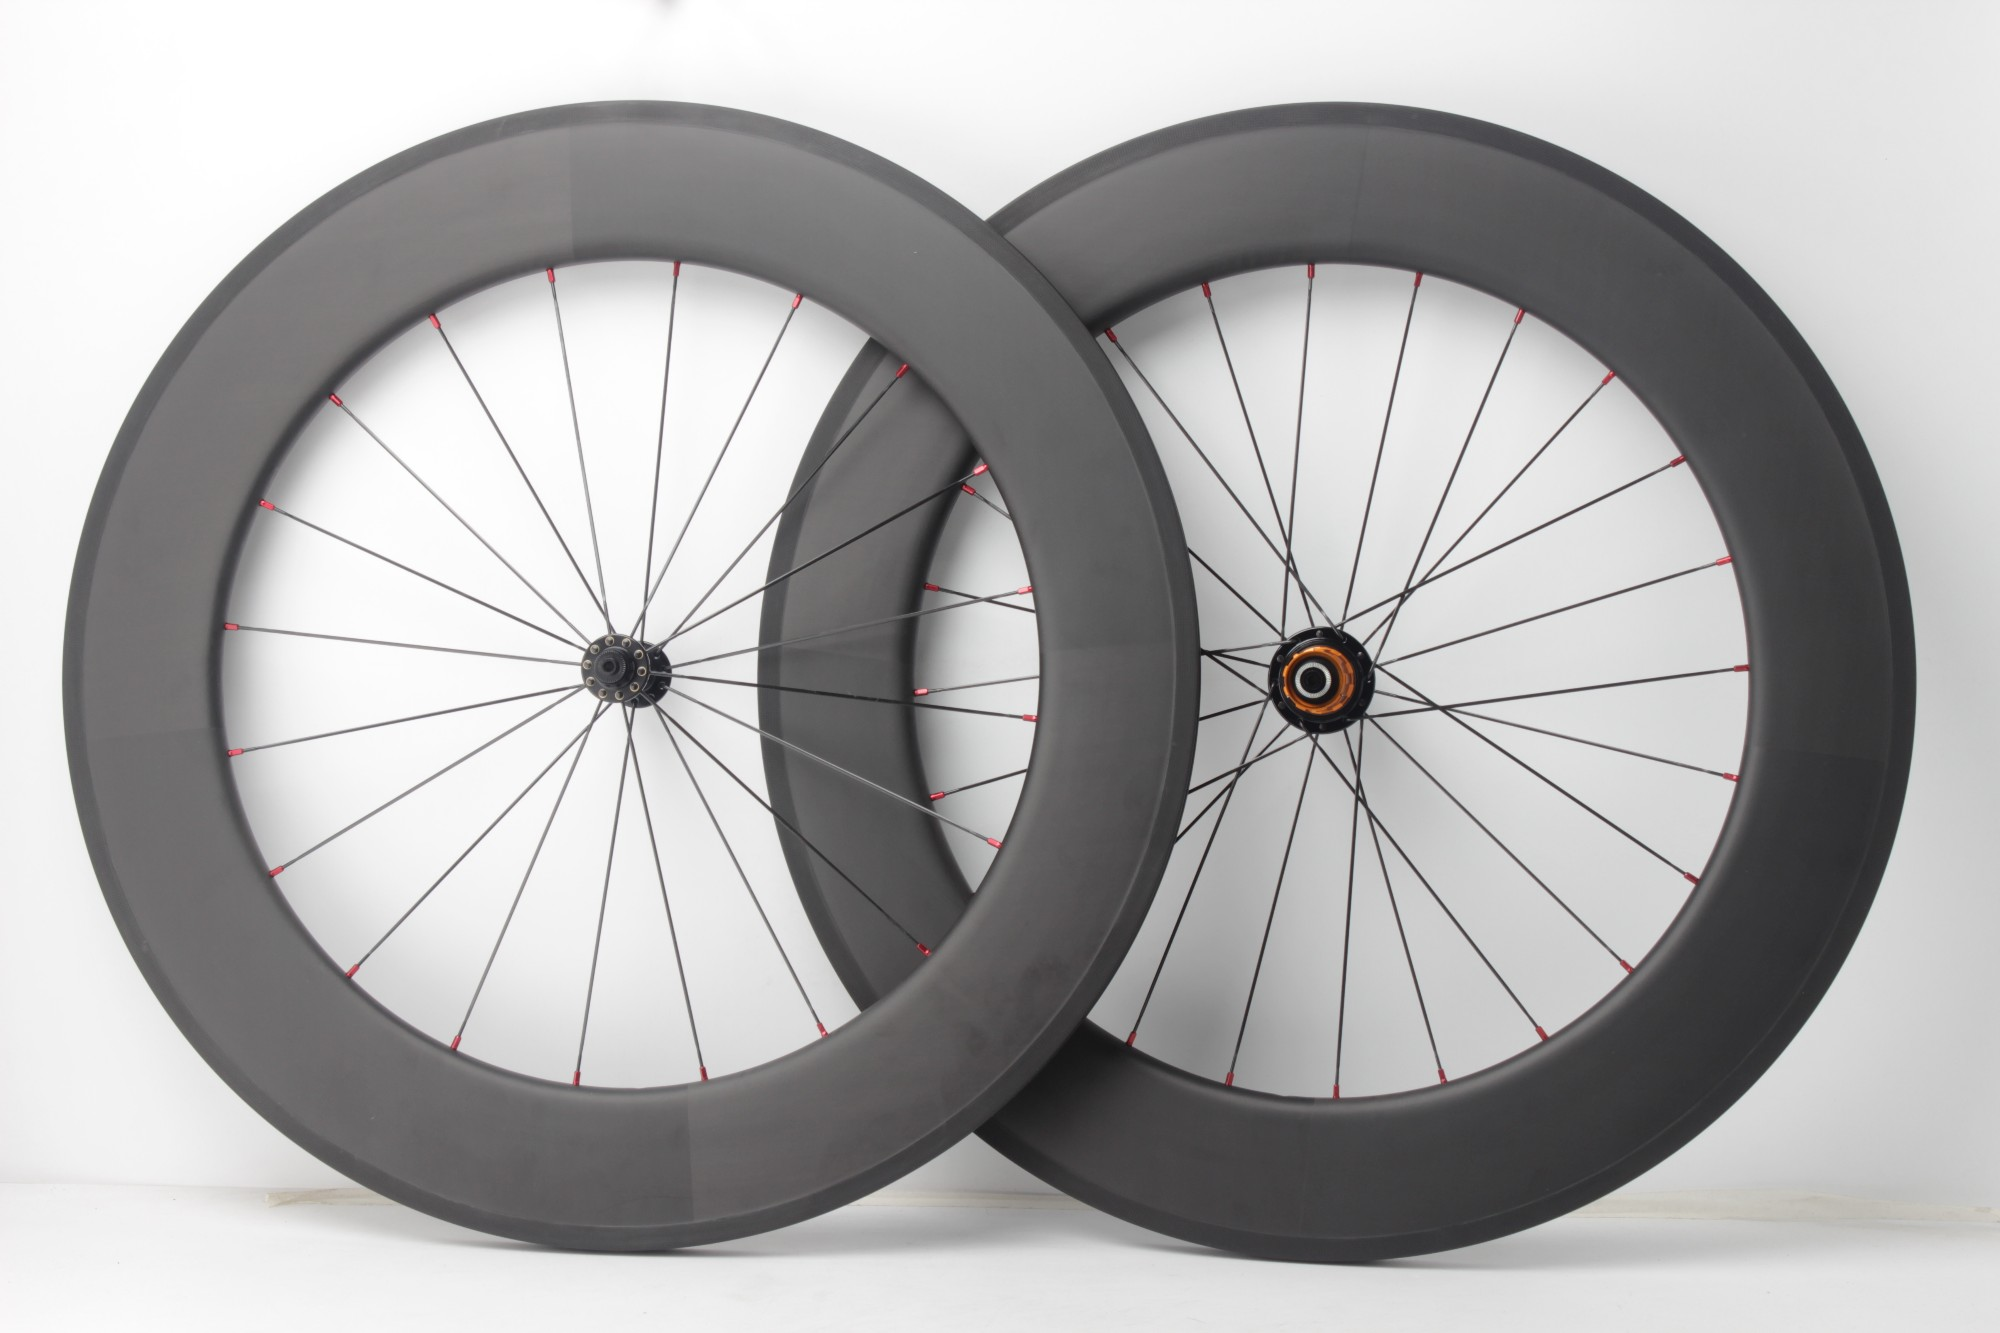 Farsports 88mm deep 25mm clincher carbon wheel for triathlon bike Manufacturers, Farsports 88mm deep 25mm clincher carbon wheel for triathlon bike Factory, Supply Farsports 88mm deep 25mm clincher carbon wheel for triathlon bike